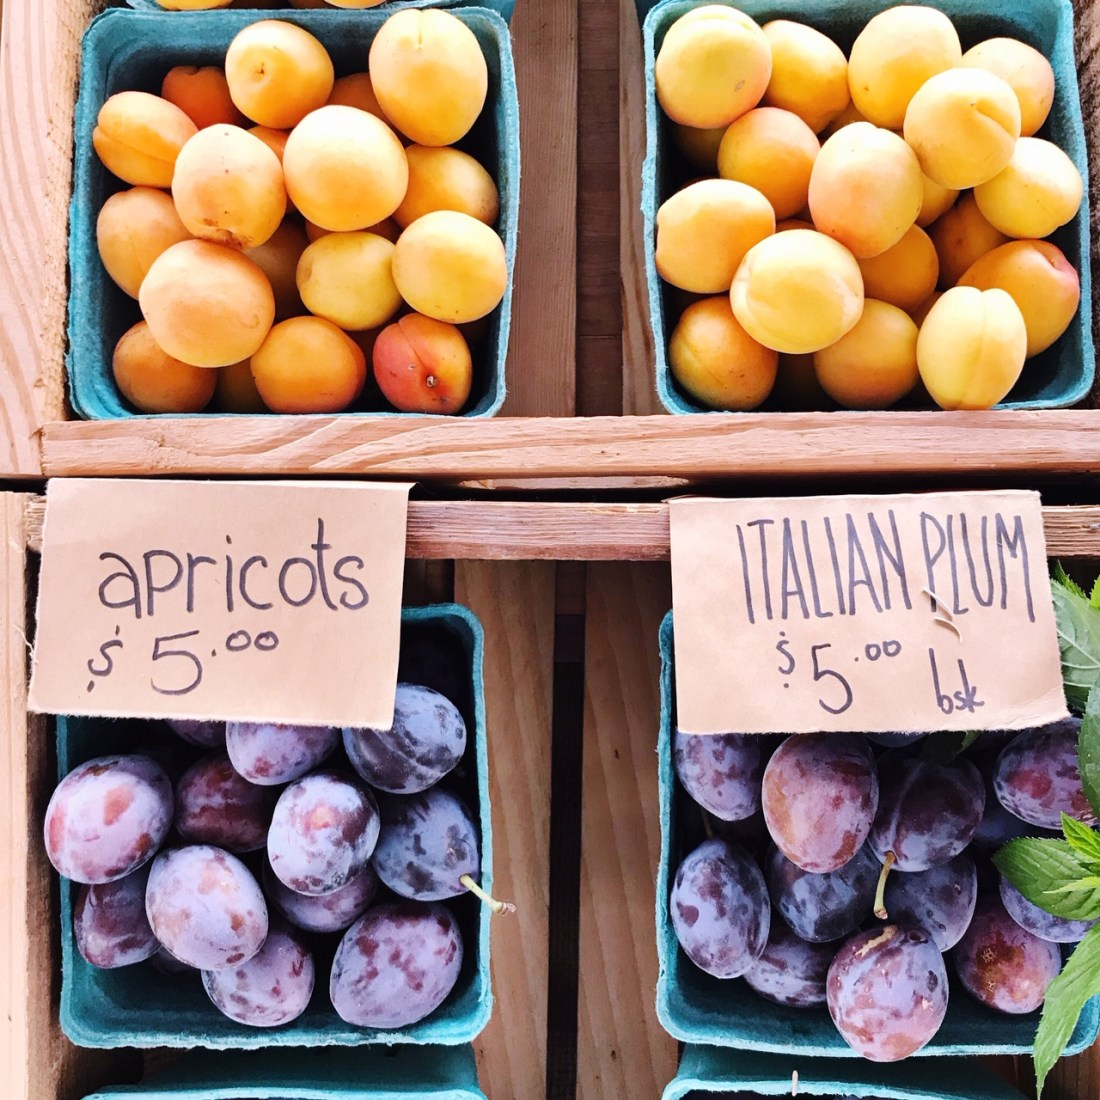 A-Z guide to freezing fruits and vegetables